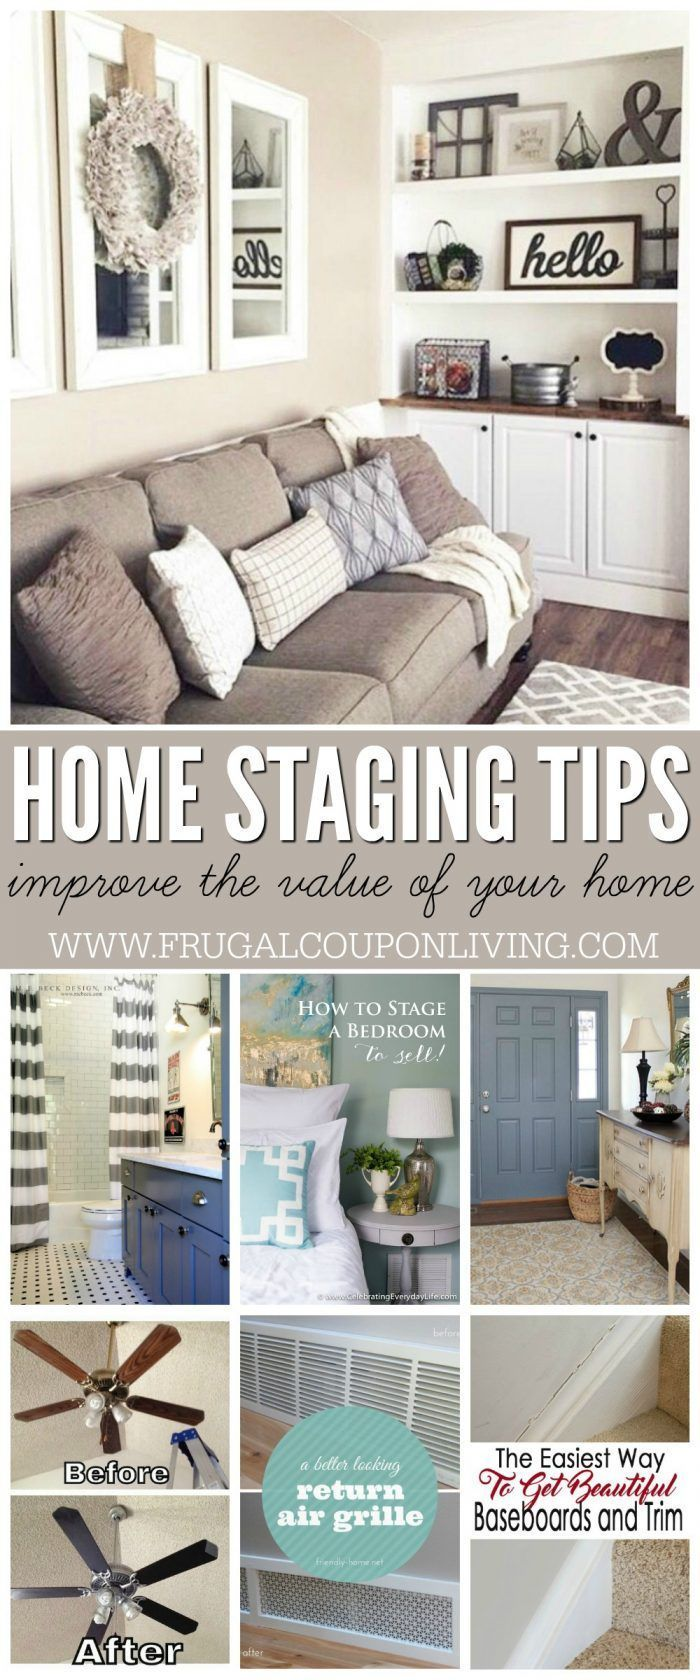 Home staging tips and ideas improve the value of your home before a sale by highlighting your homes strengths and downplaying its weaknesses